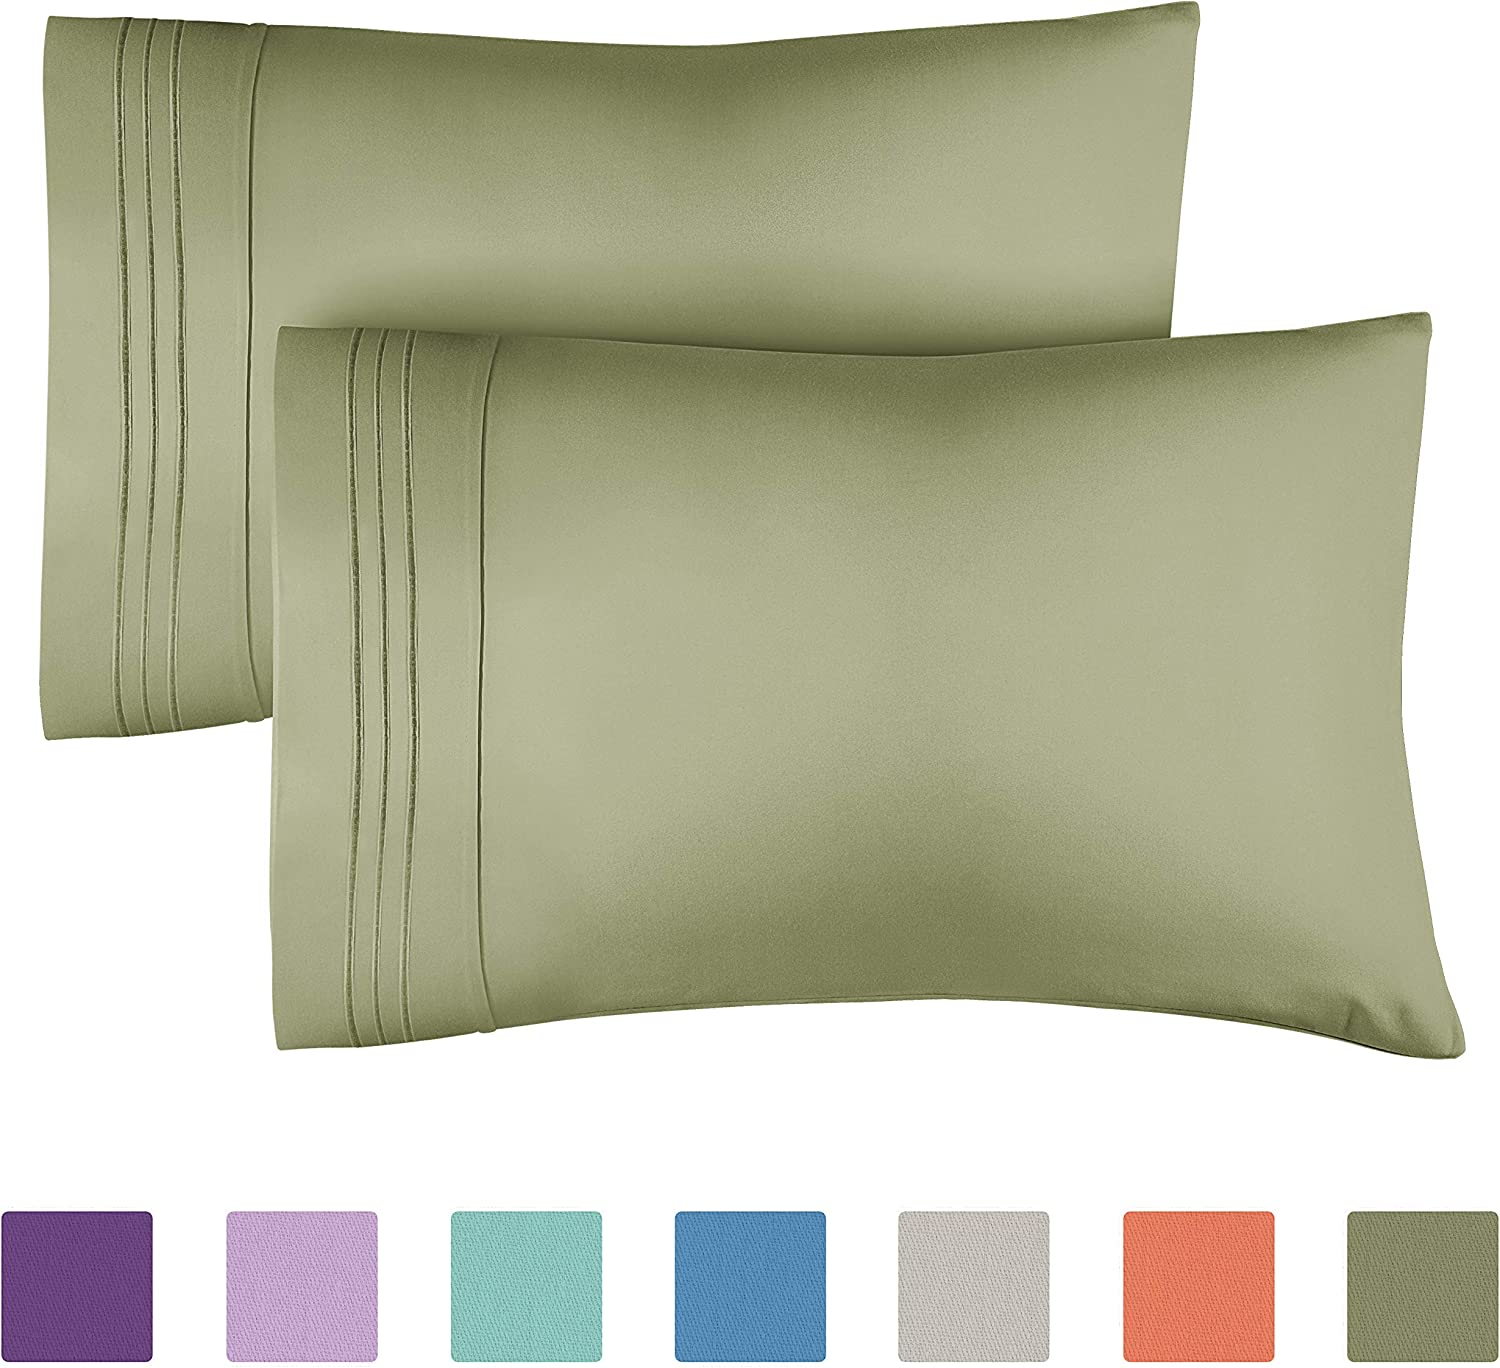 King Size Pillow Cases Set of 2 – Soft, Premium Quality Hypoallergenic Sage Green Pillowcase Pillow Covers – Machine Washable Pillow Protectors – 20x40, 20x36 & 20x48 King Size Pillows for Sleeping 2